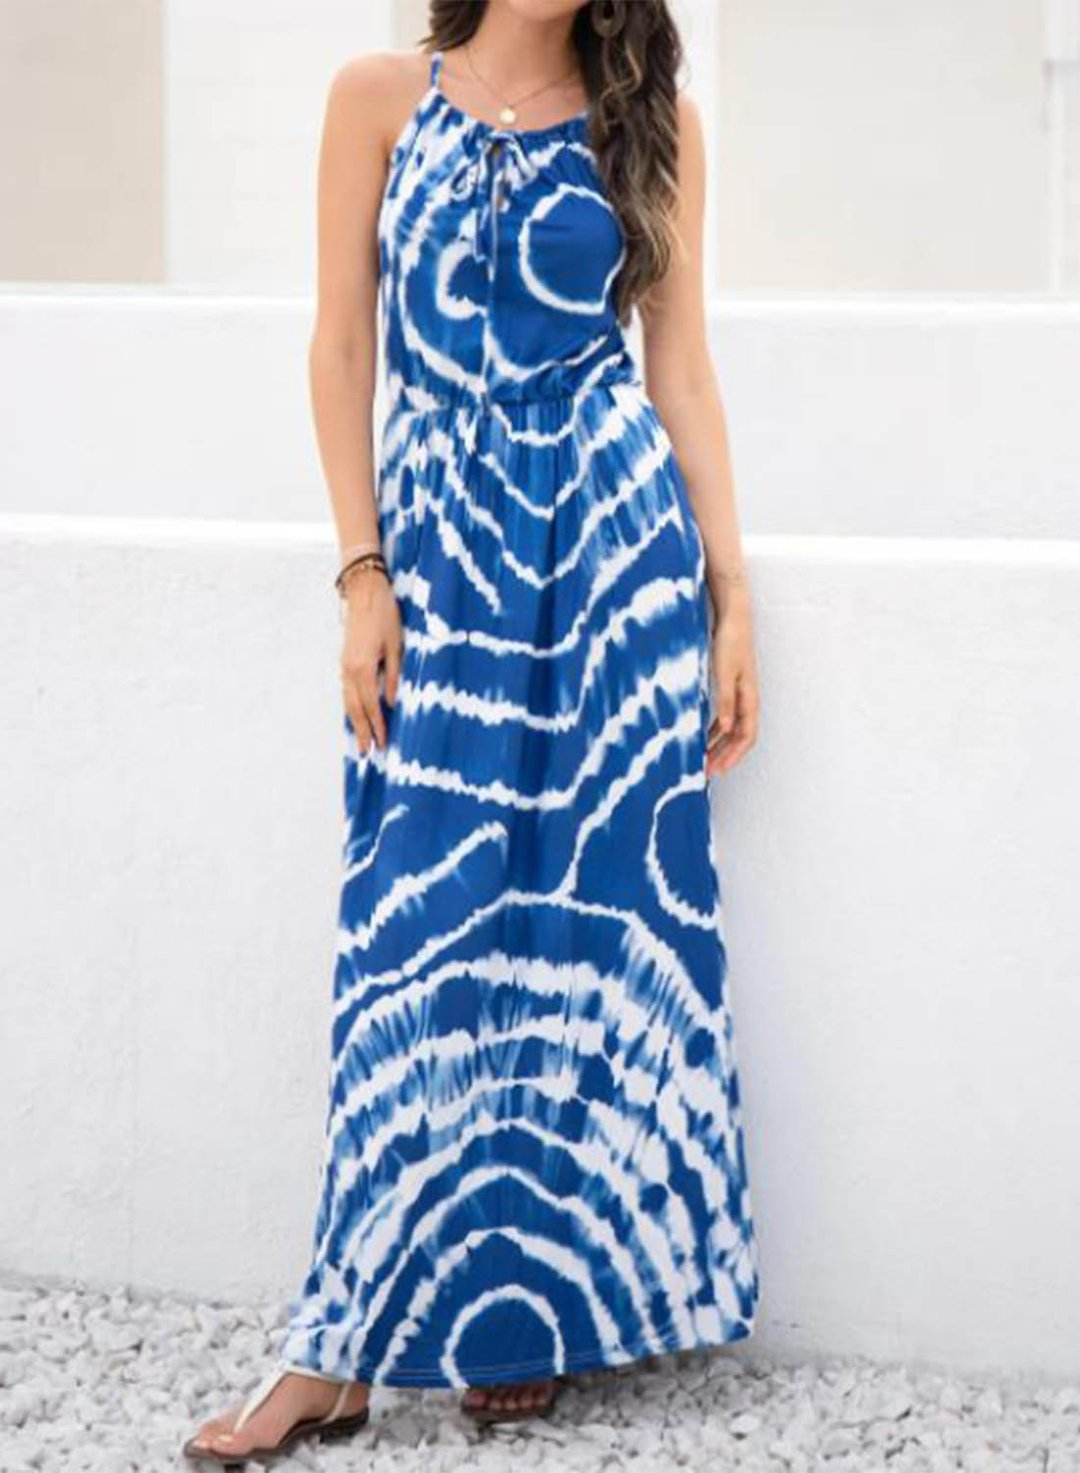 Blue Women's Dress Tiedye A-line Halter Sleeveless Summer Vacation Beach Boho Maxi Dress LC42516-5